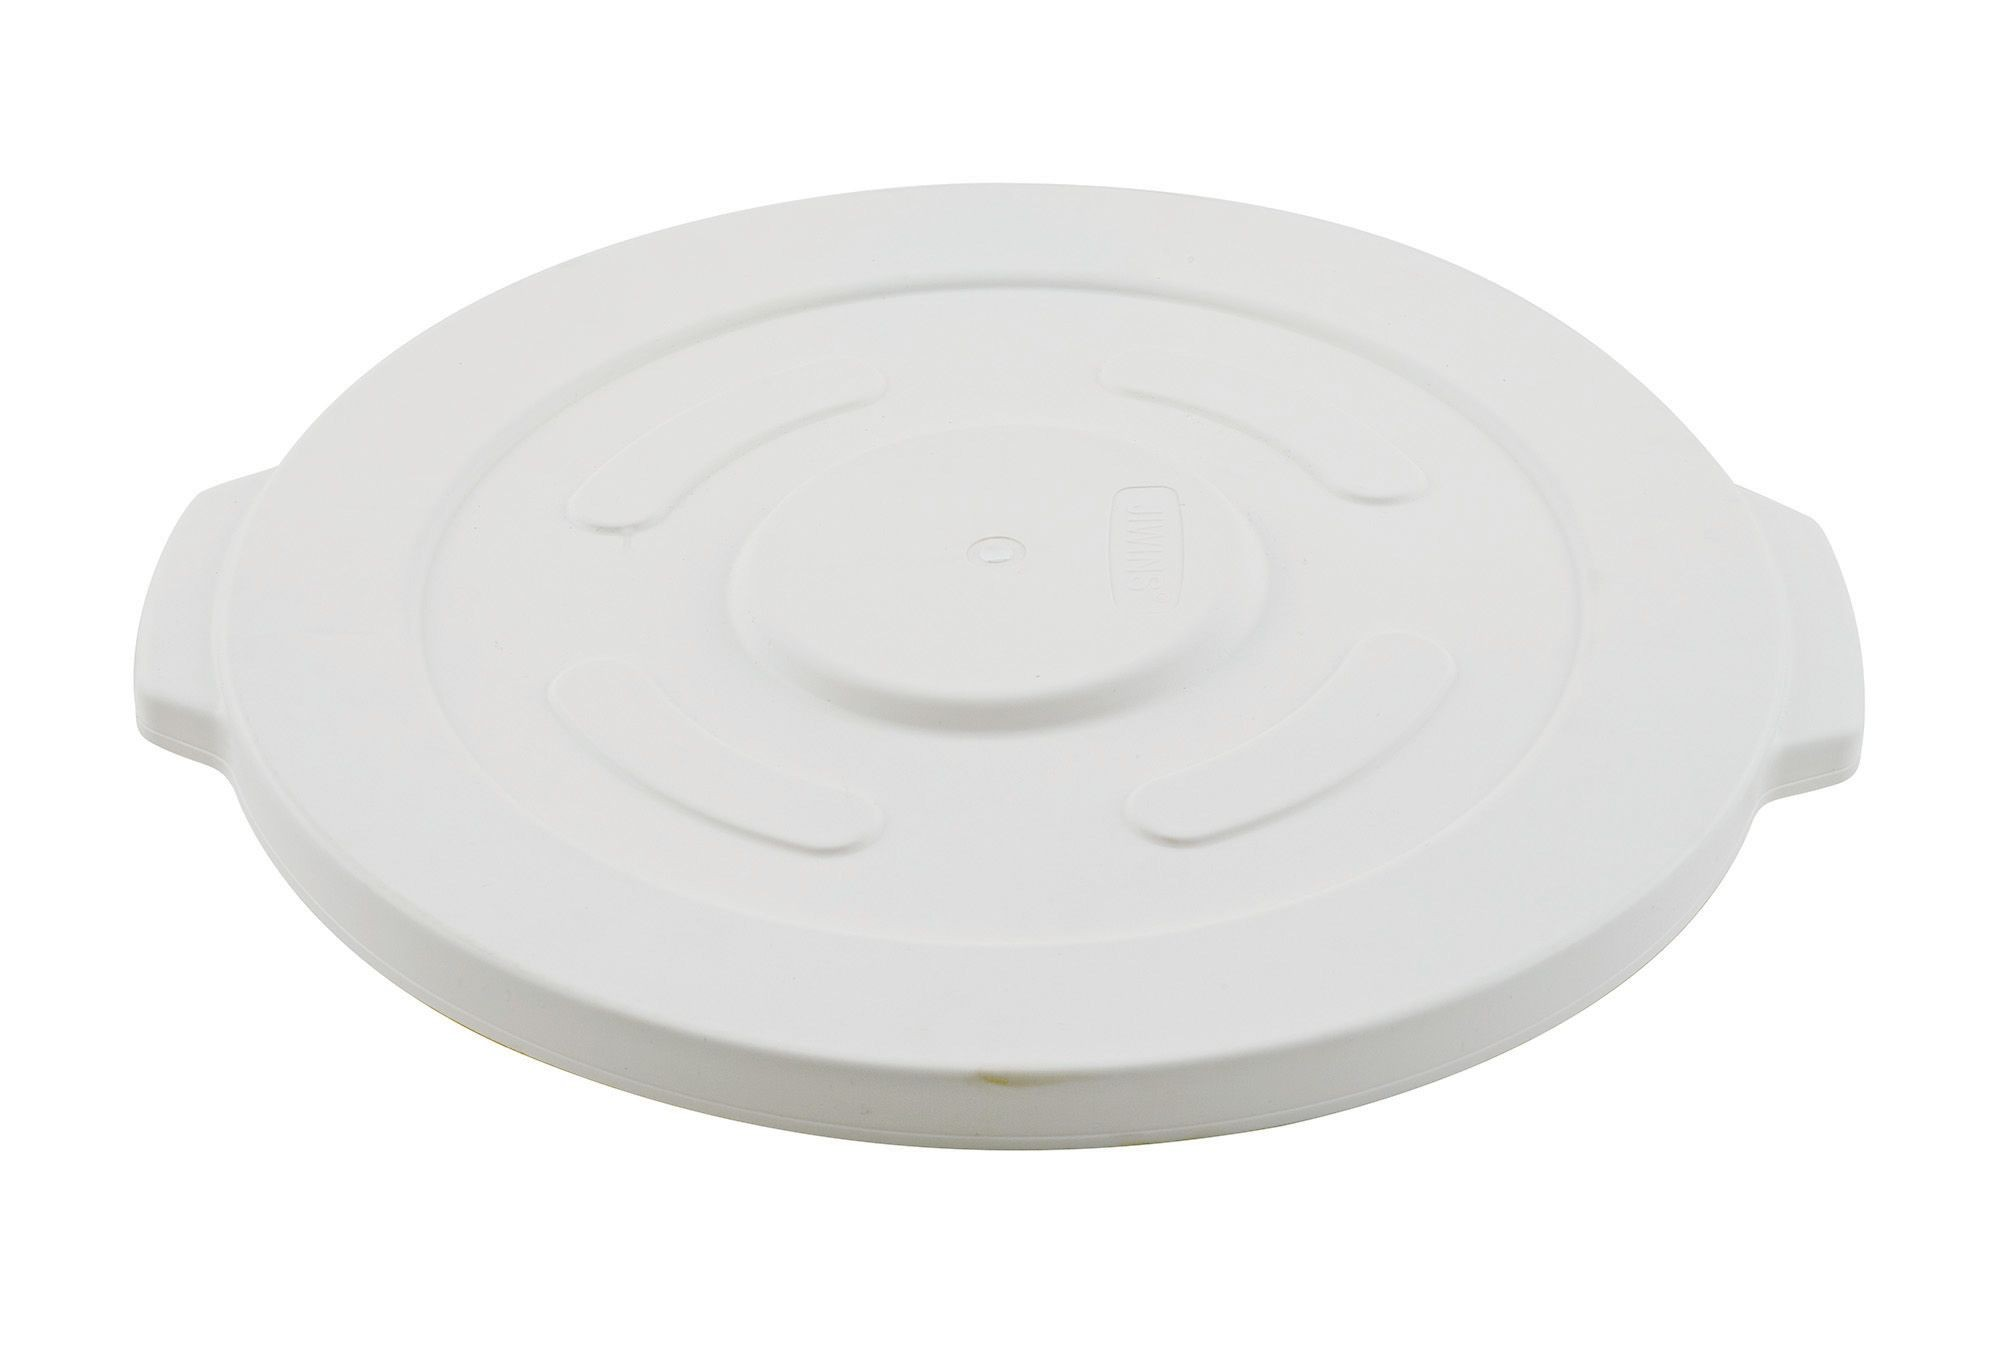 Winco FCW-20L Lid for White 20 Gallon Polypropylene Container